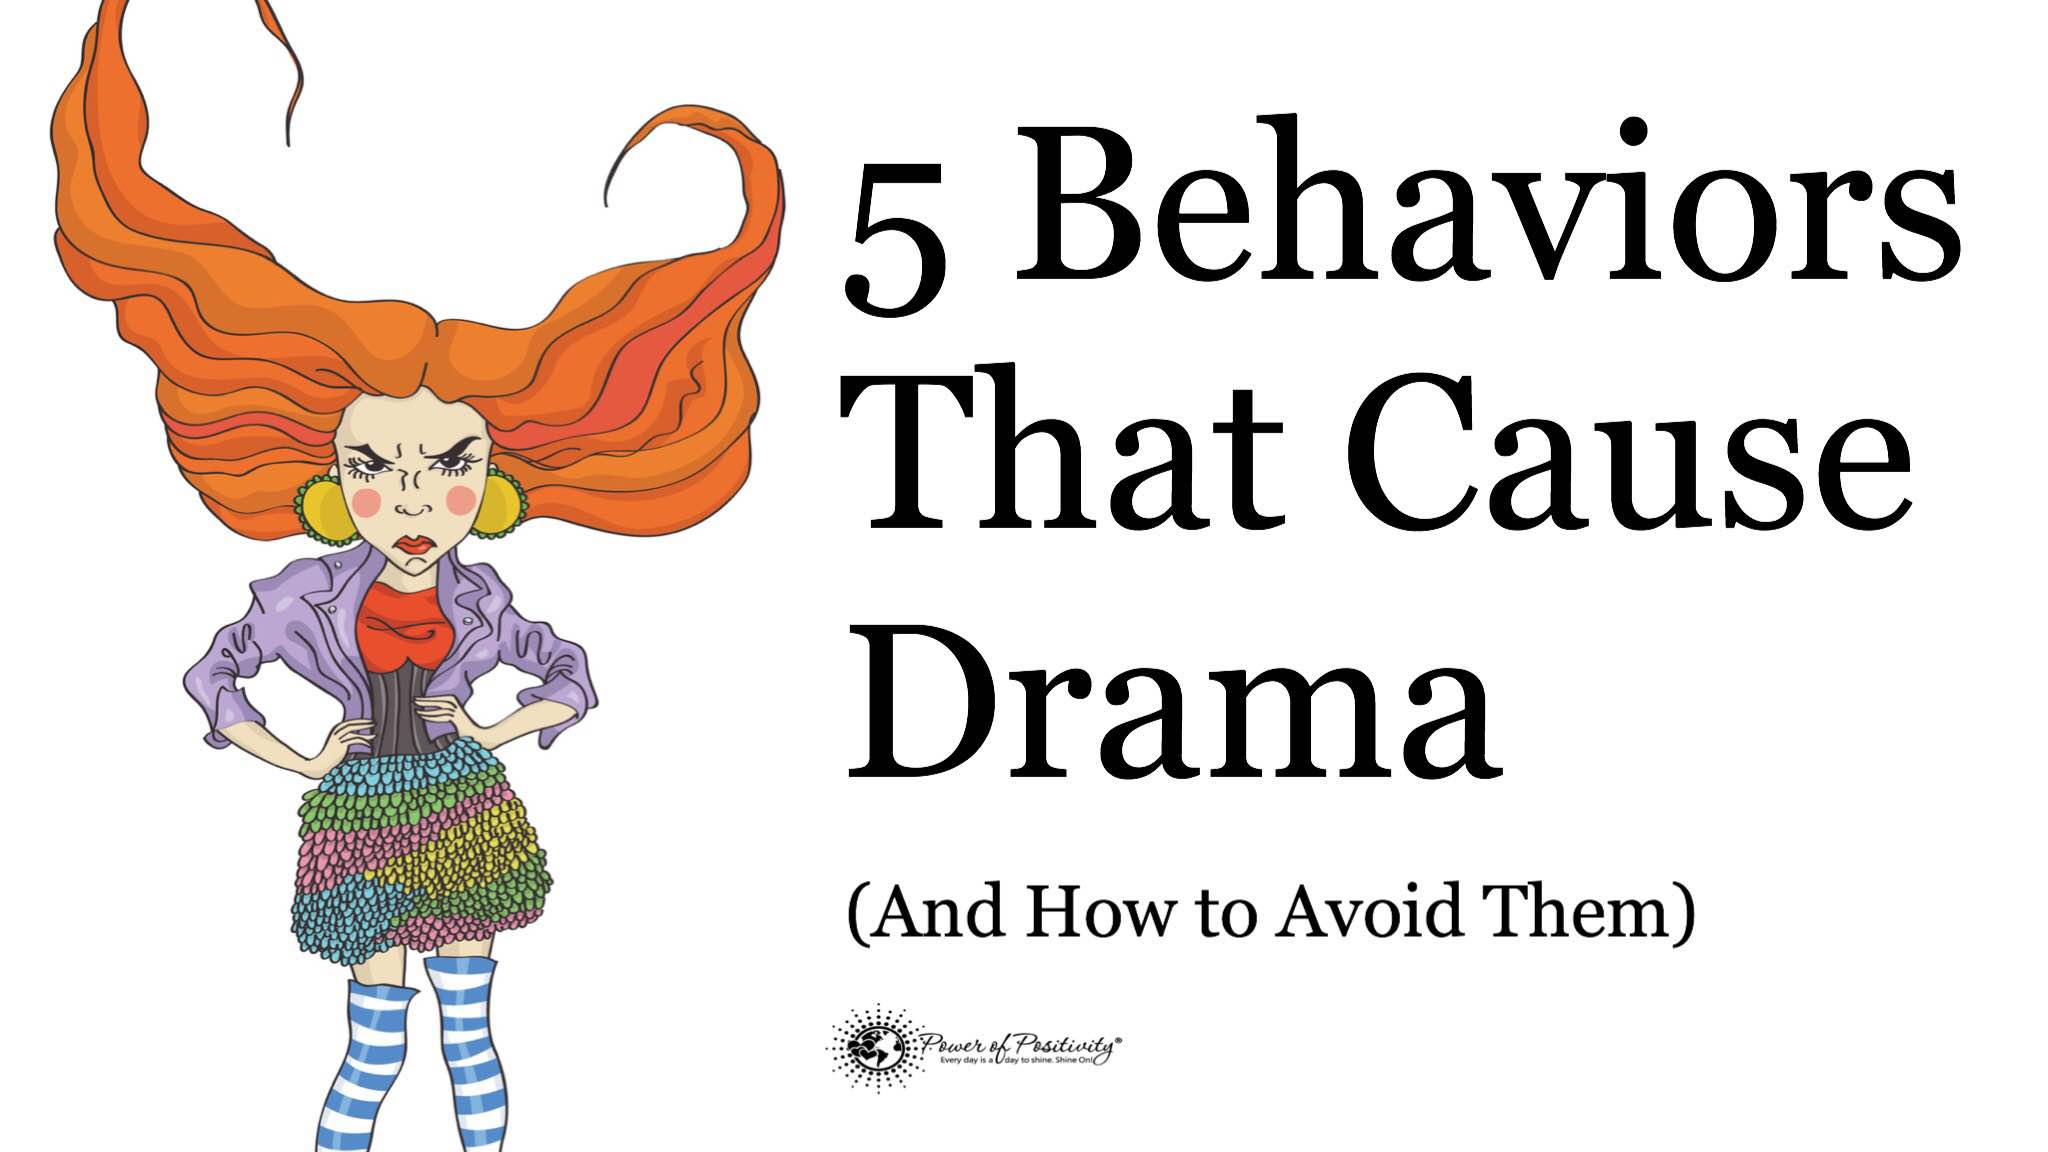 5 Behaviors of Dramatic People (And How to Avoid Having Them).